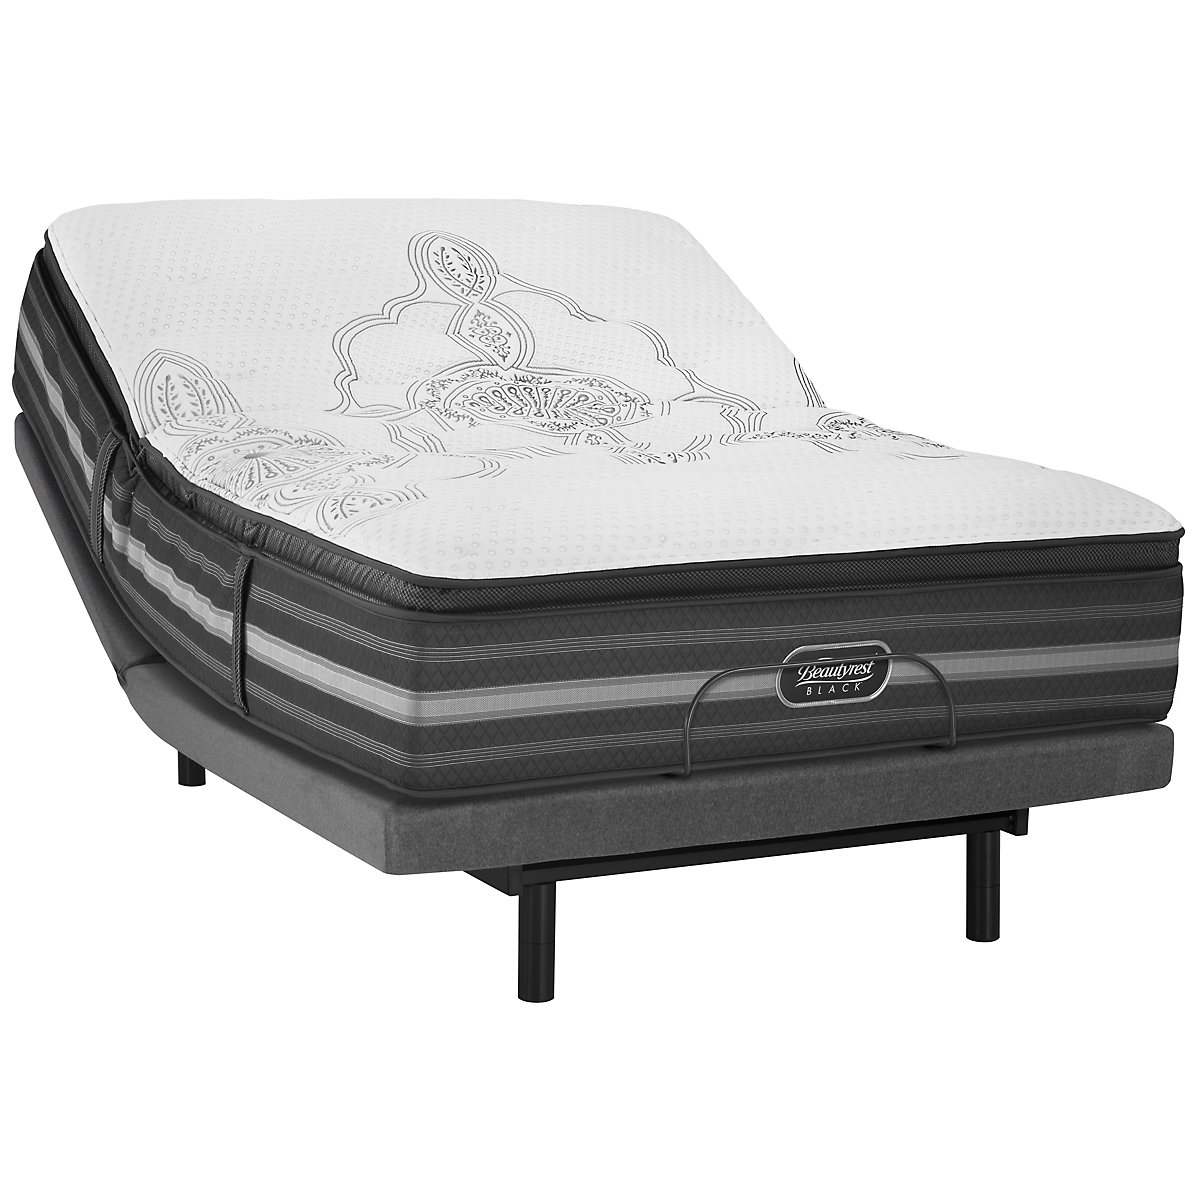 Beautyrest Black Katarina Plush Innerspring Select Adjustable Mattress Set